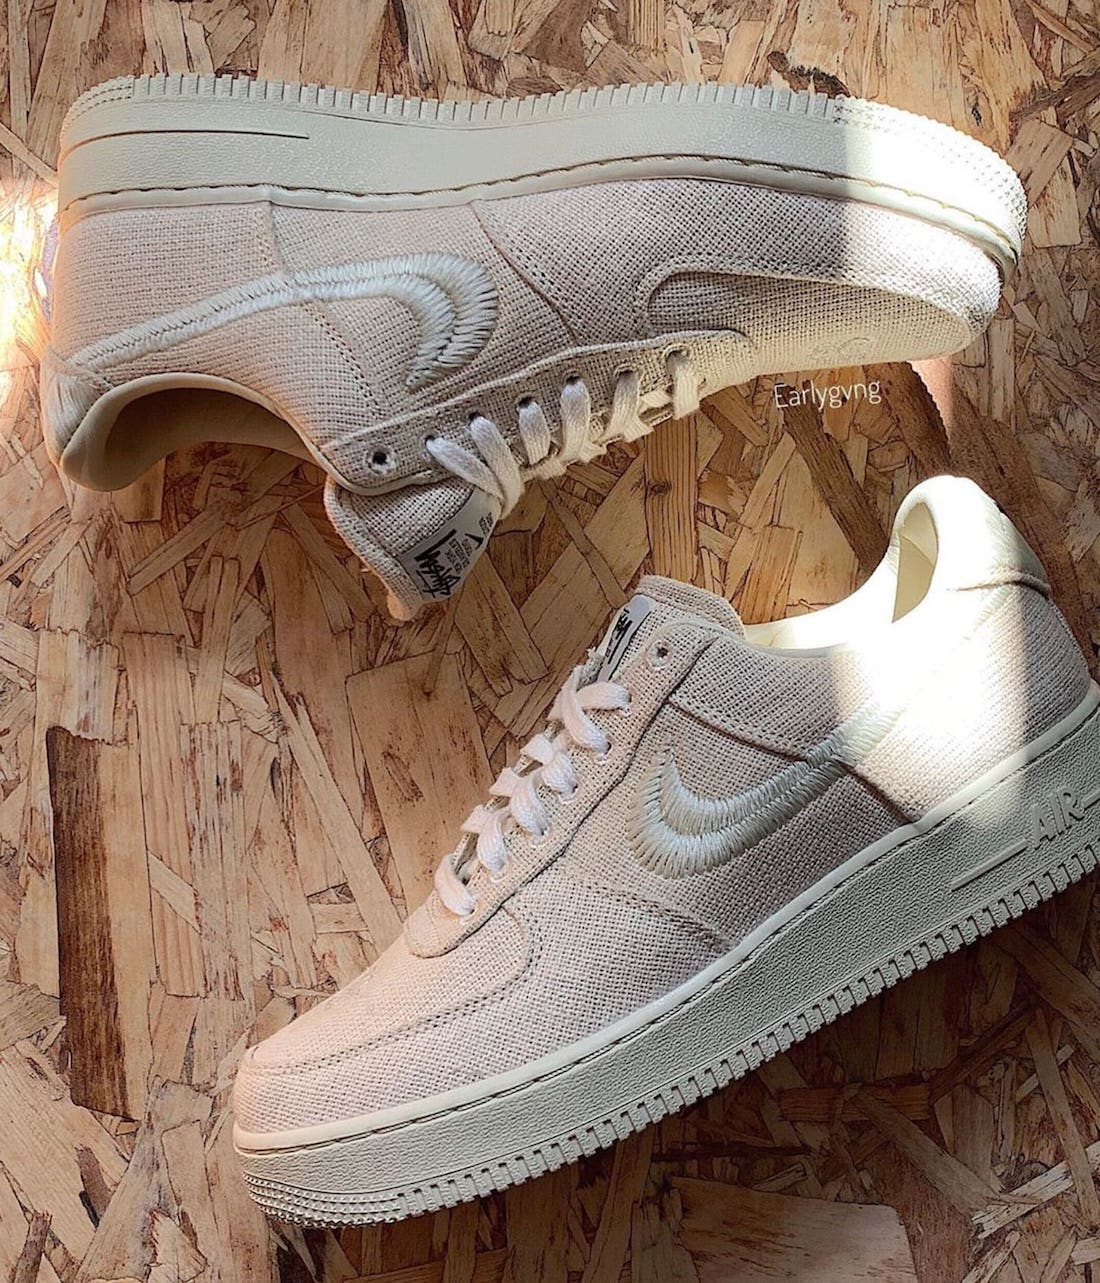 Stussy Nike Air Force 1 Low Fossil Stone CZ9084-200 Release Date